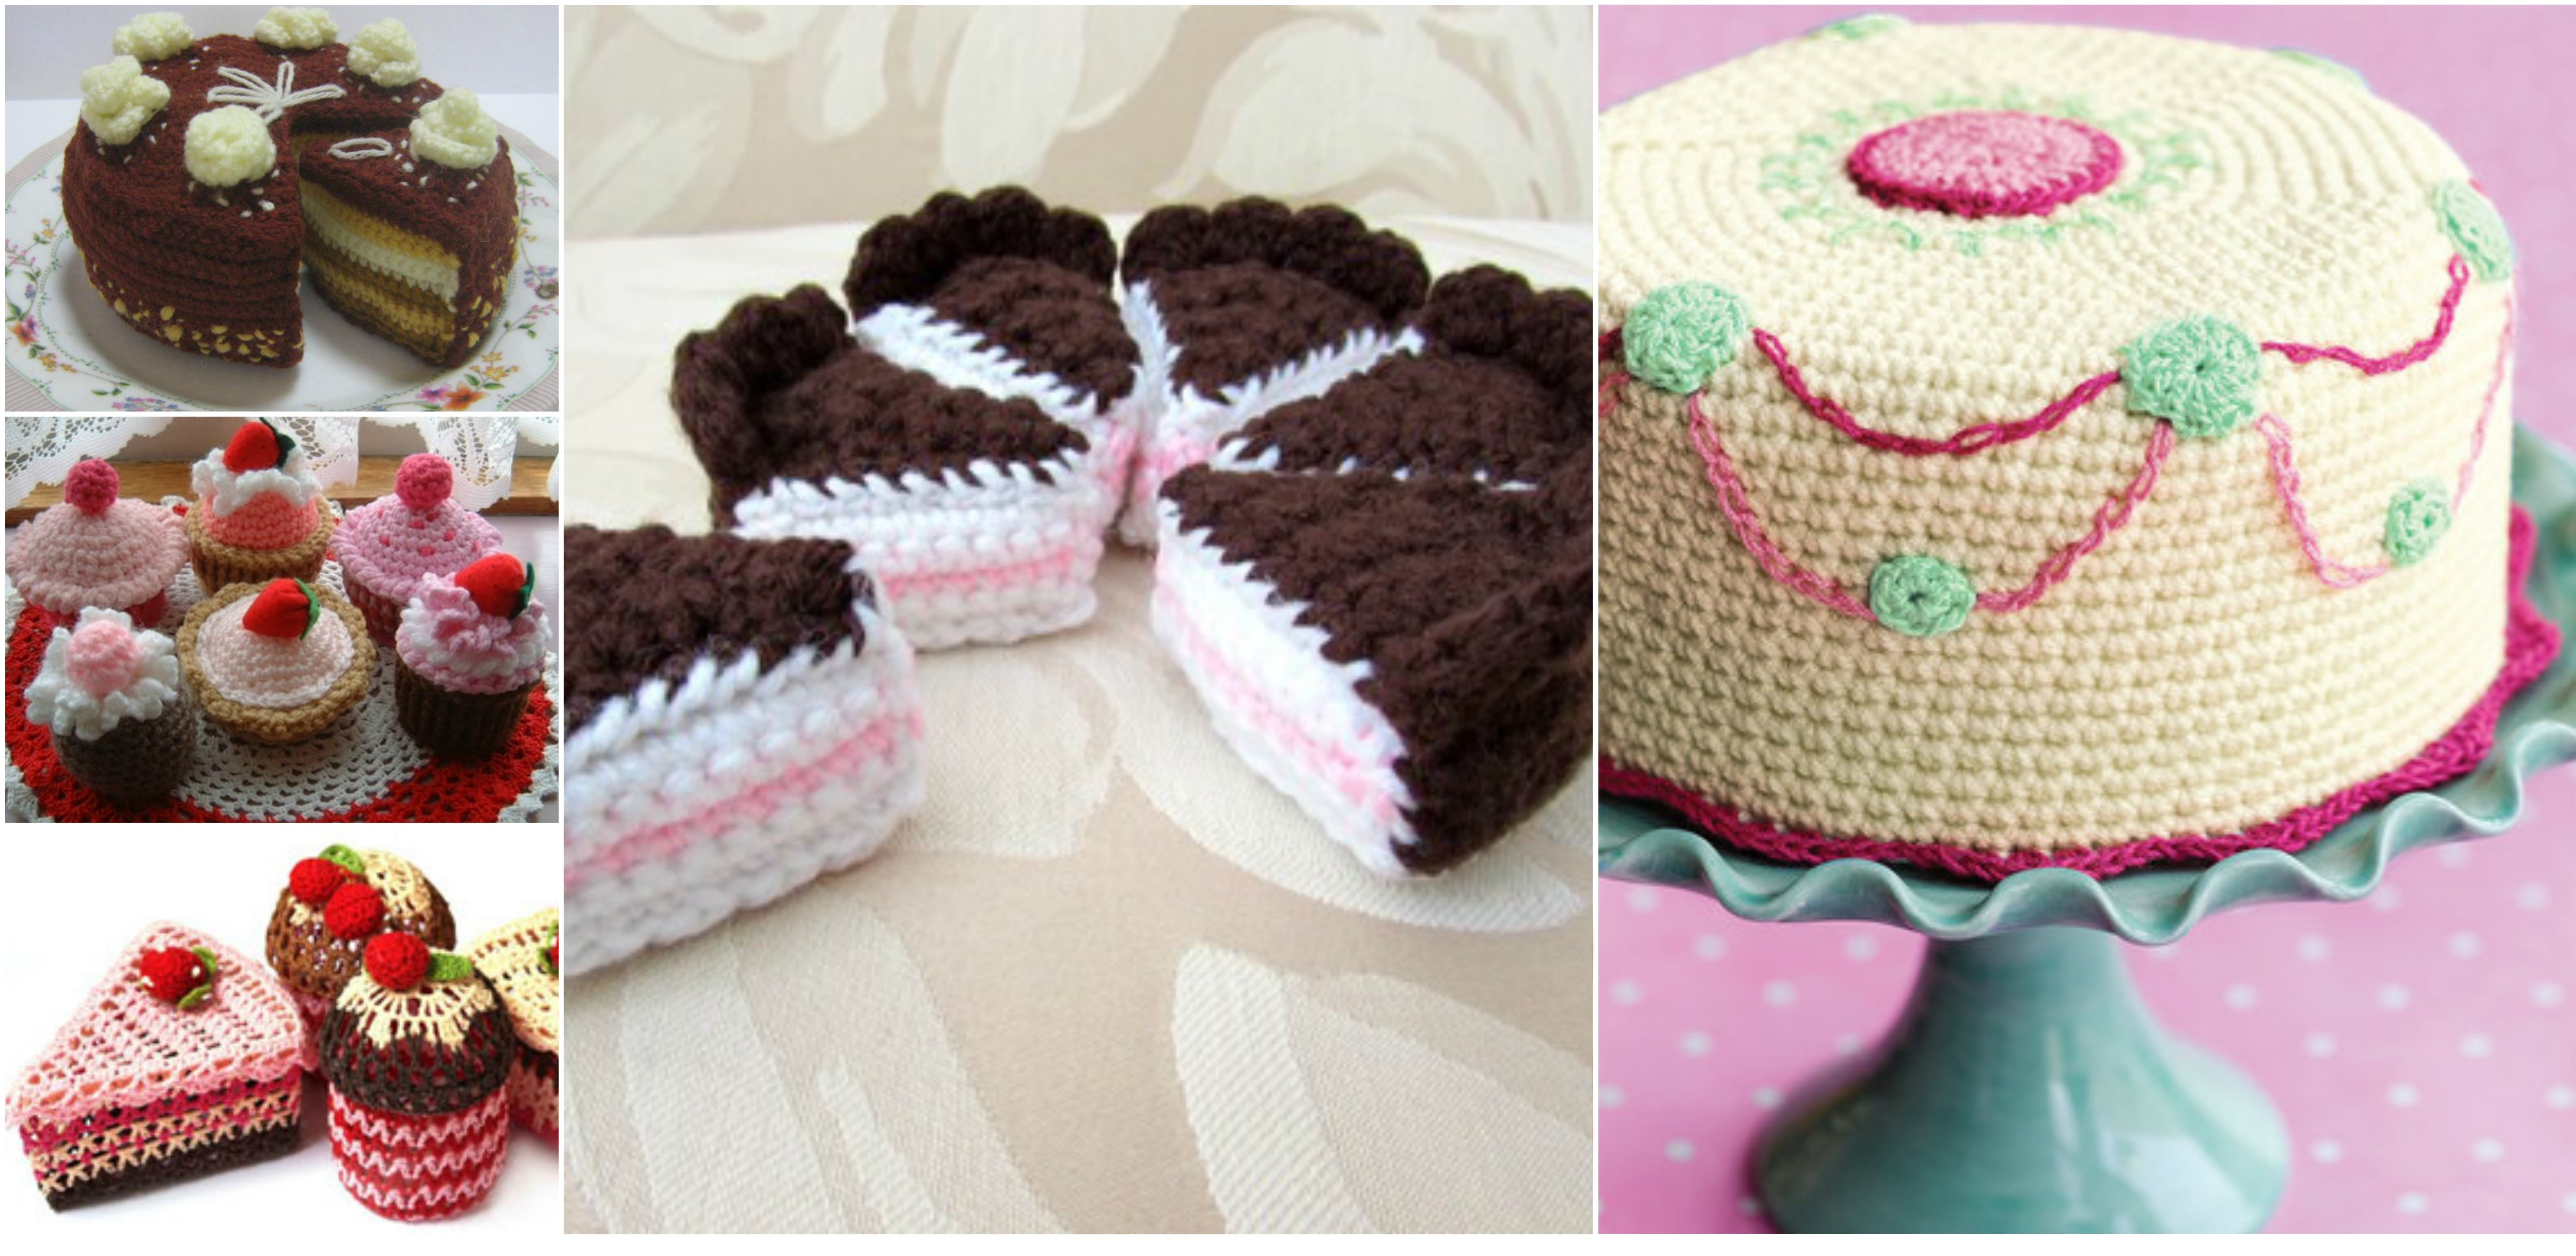 Beautiful Crochet Cake and Cupcakes Crochet Cake Of Incredible 40 Ideas Crochet Cake